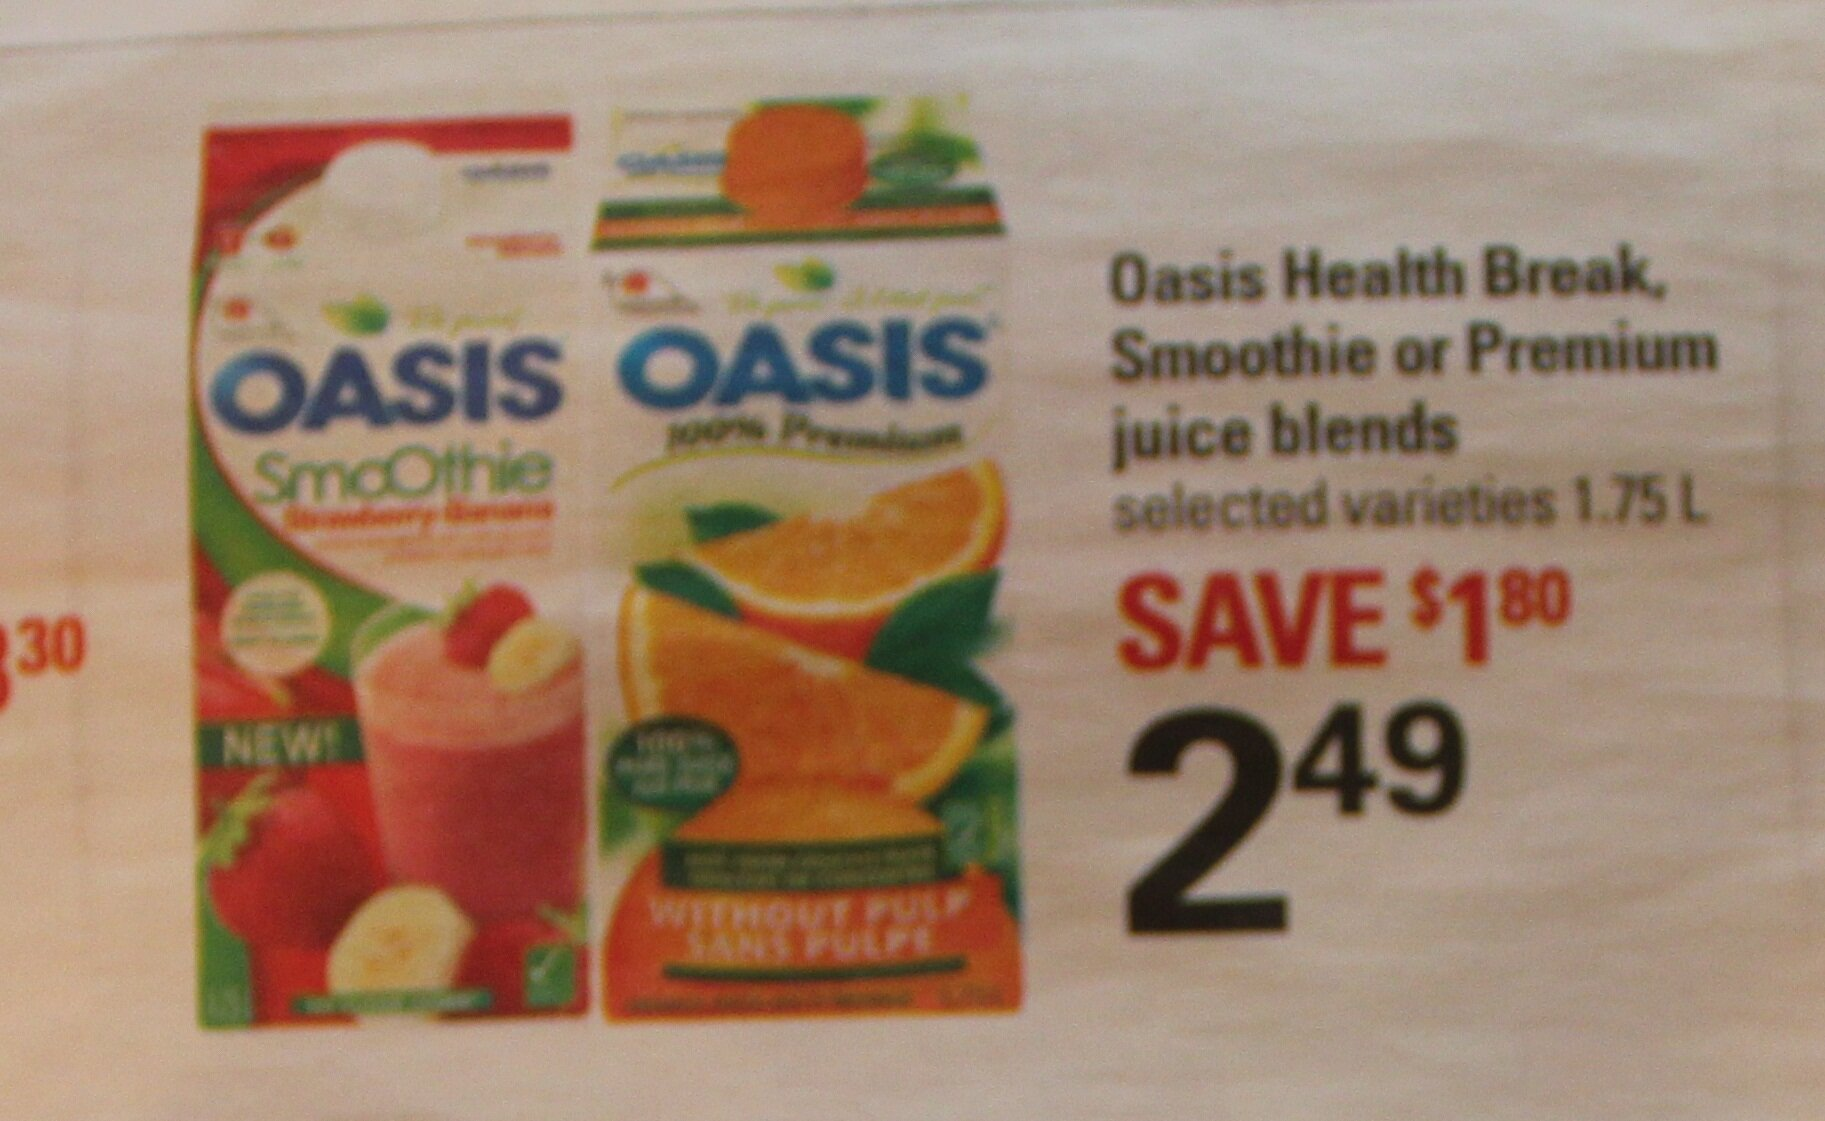 $1.24 for Oasis Smoothie, Health Break or Premium Juice Blends – Loblaws Deal